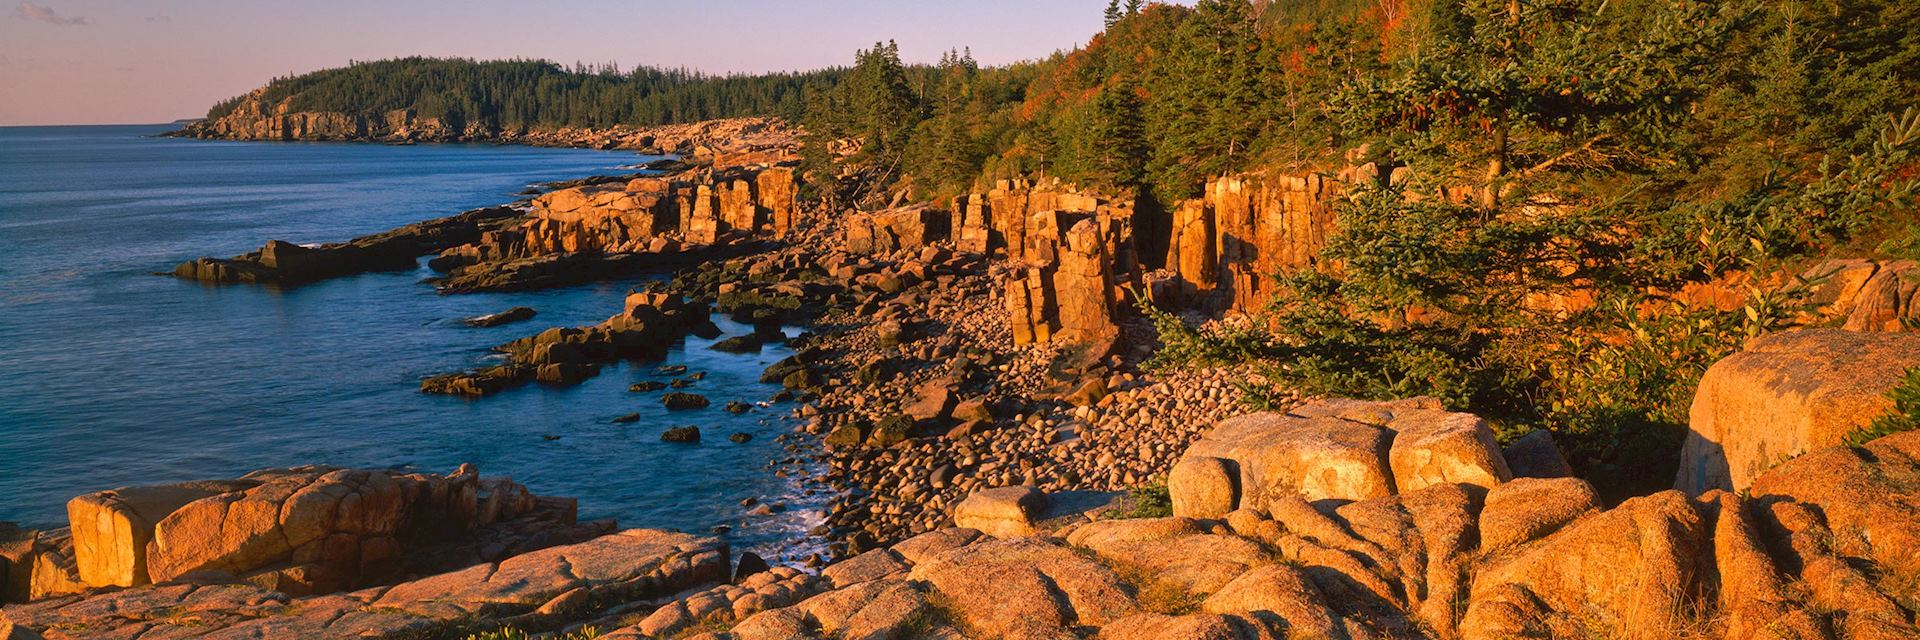 Bar Harbor, New England